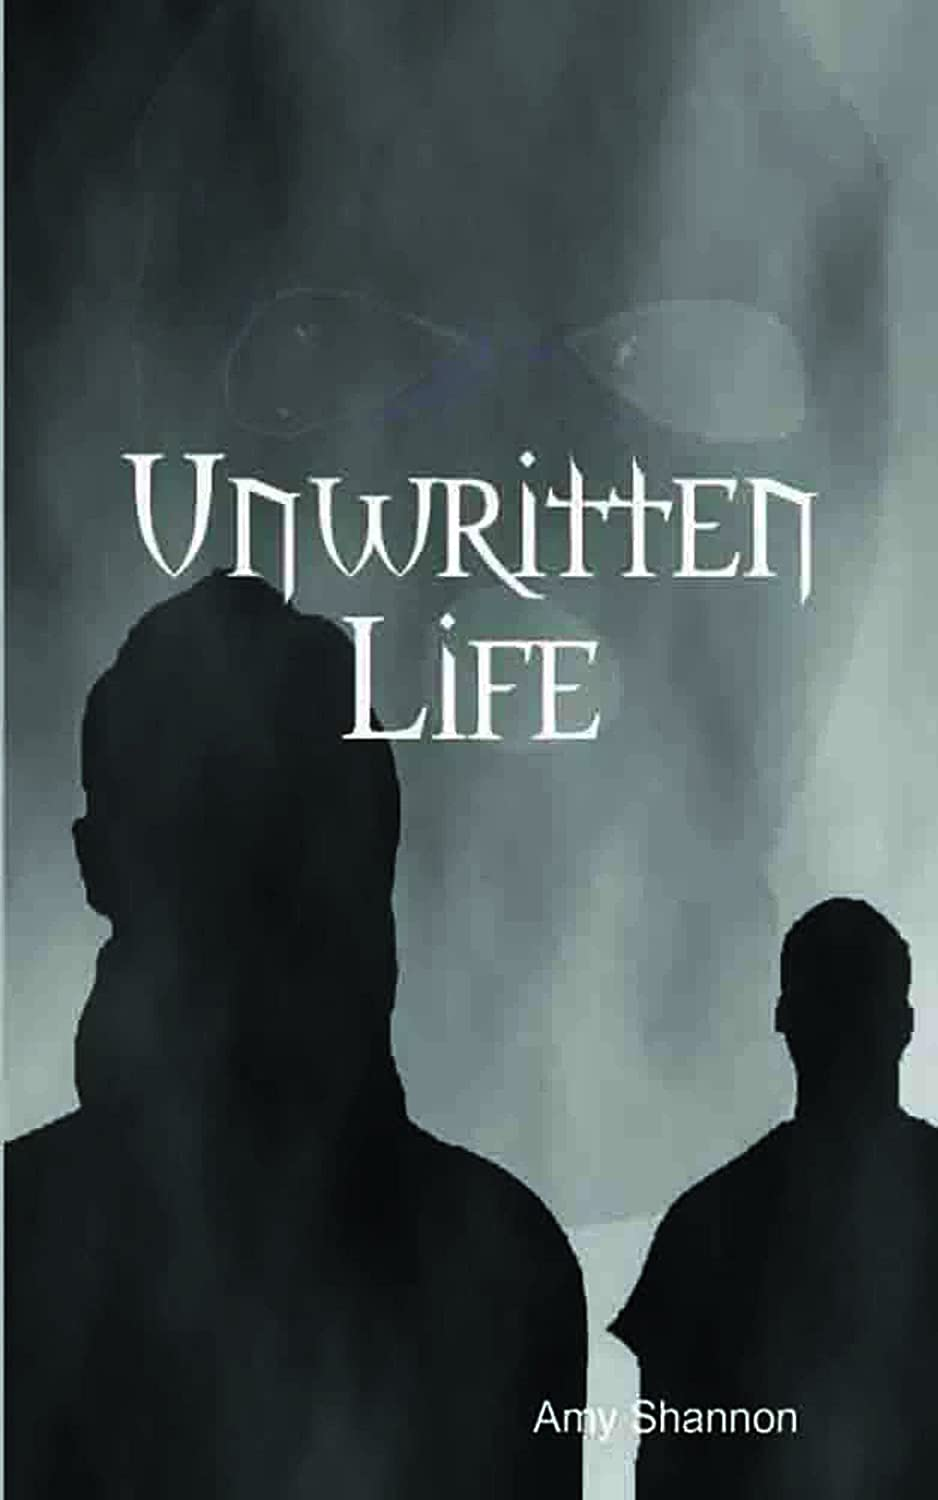 http://www.amazon.com/Unwritten-Life-Book-1-ebook/dp/B00G8KDSLO